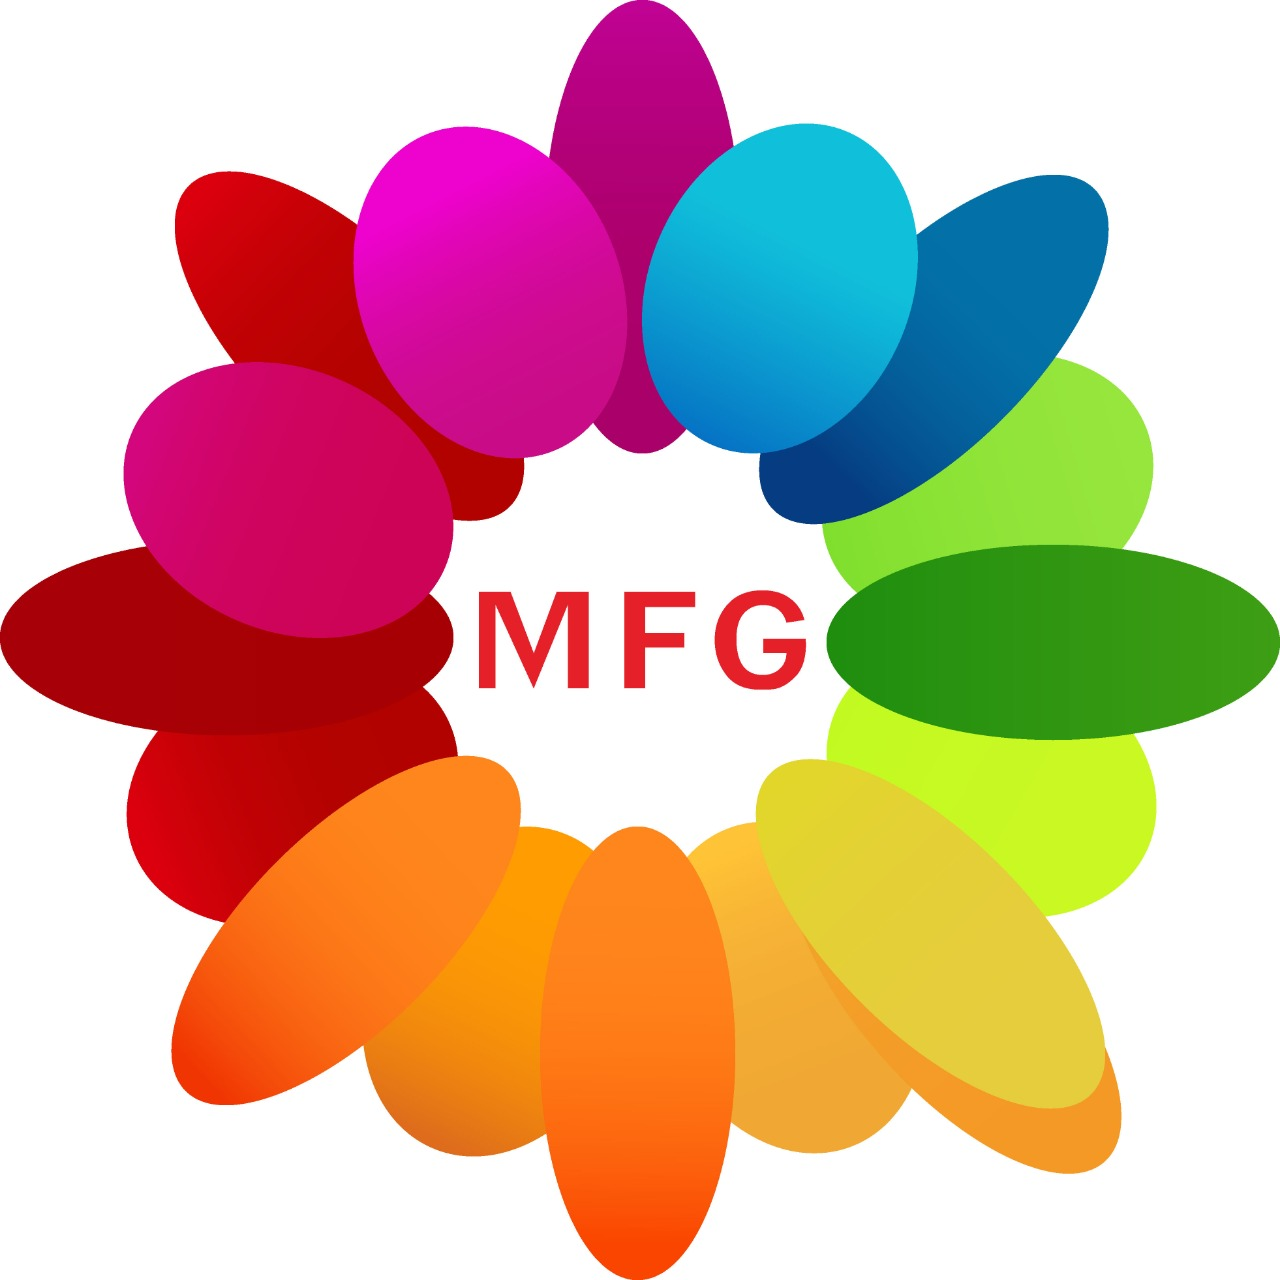 1 kg fresh cream premium quality strawberry cake(Eggless)